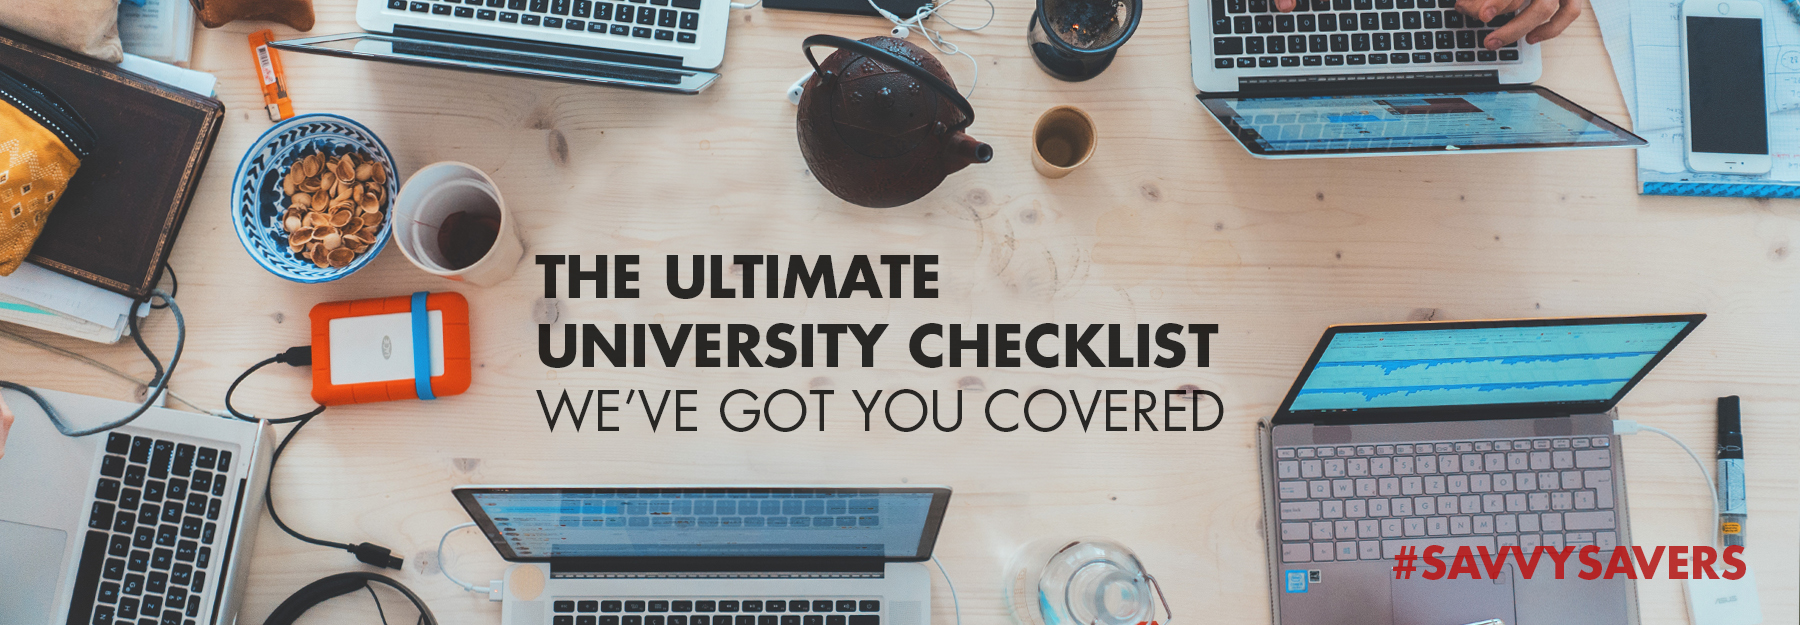 The Ultimate University Checklist